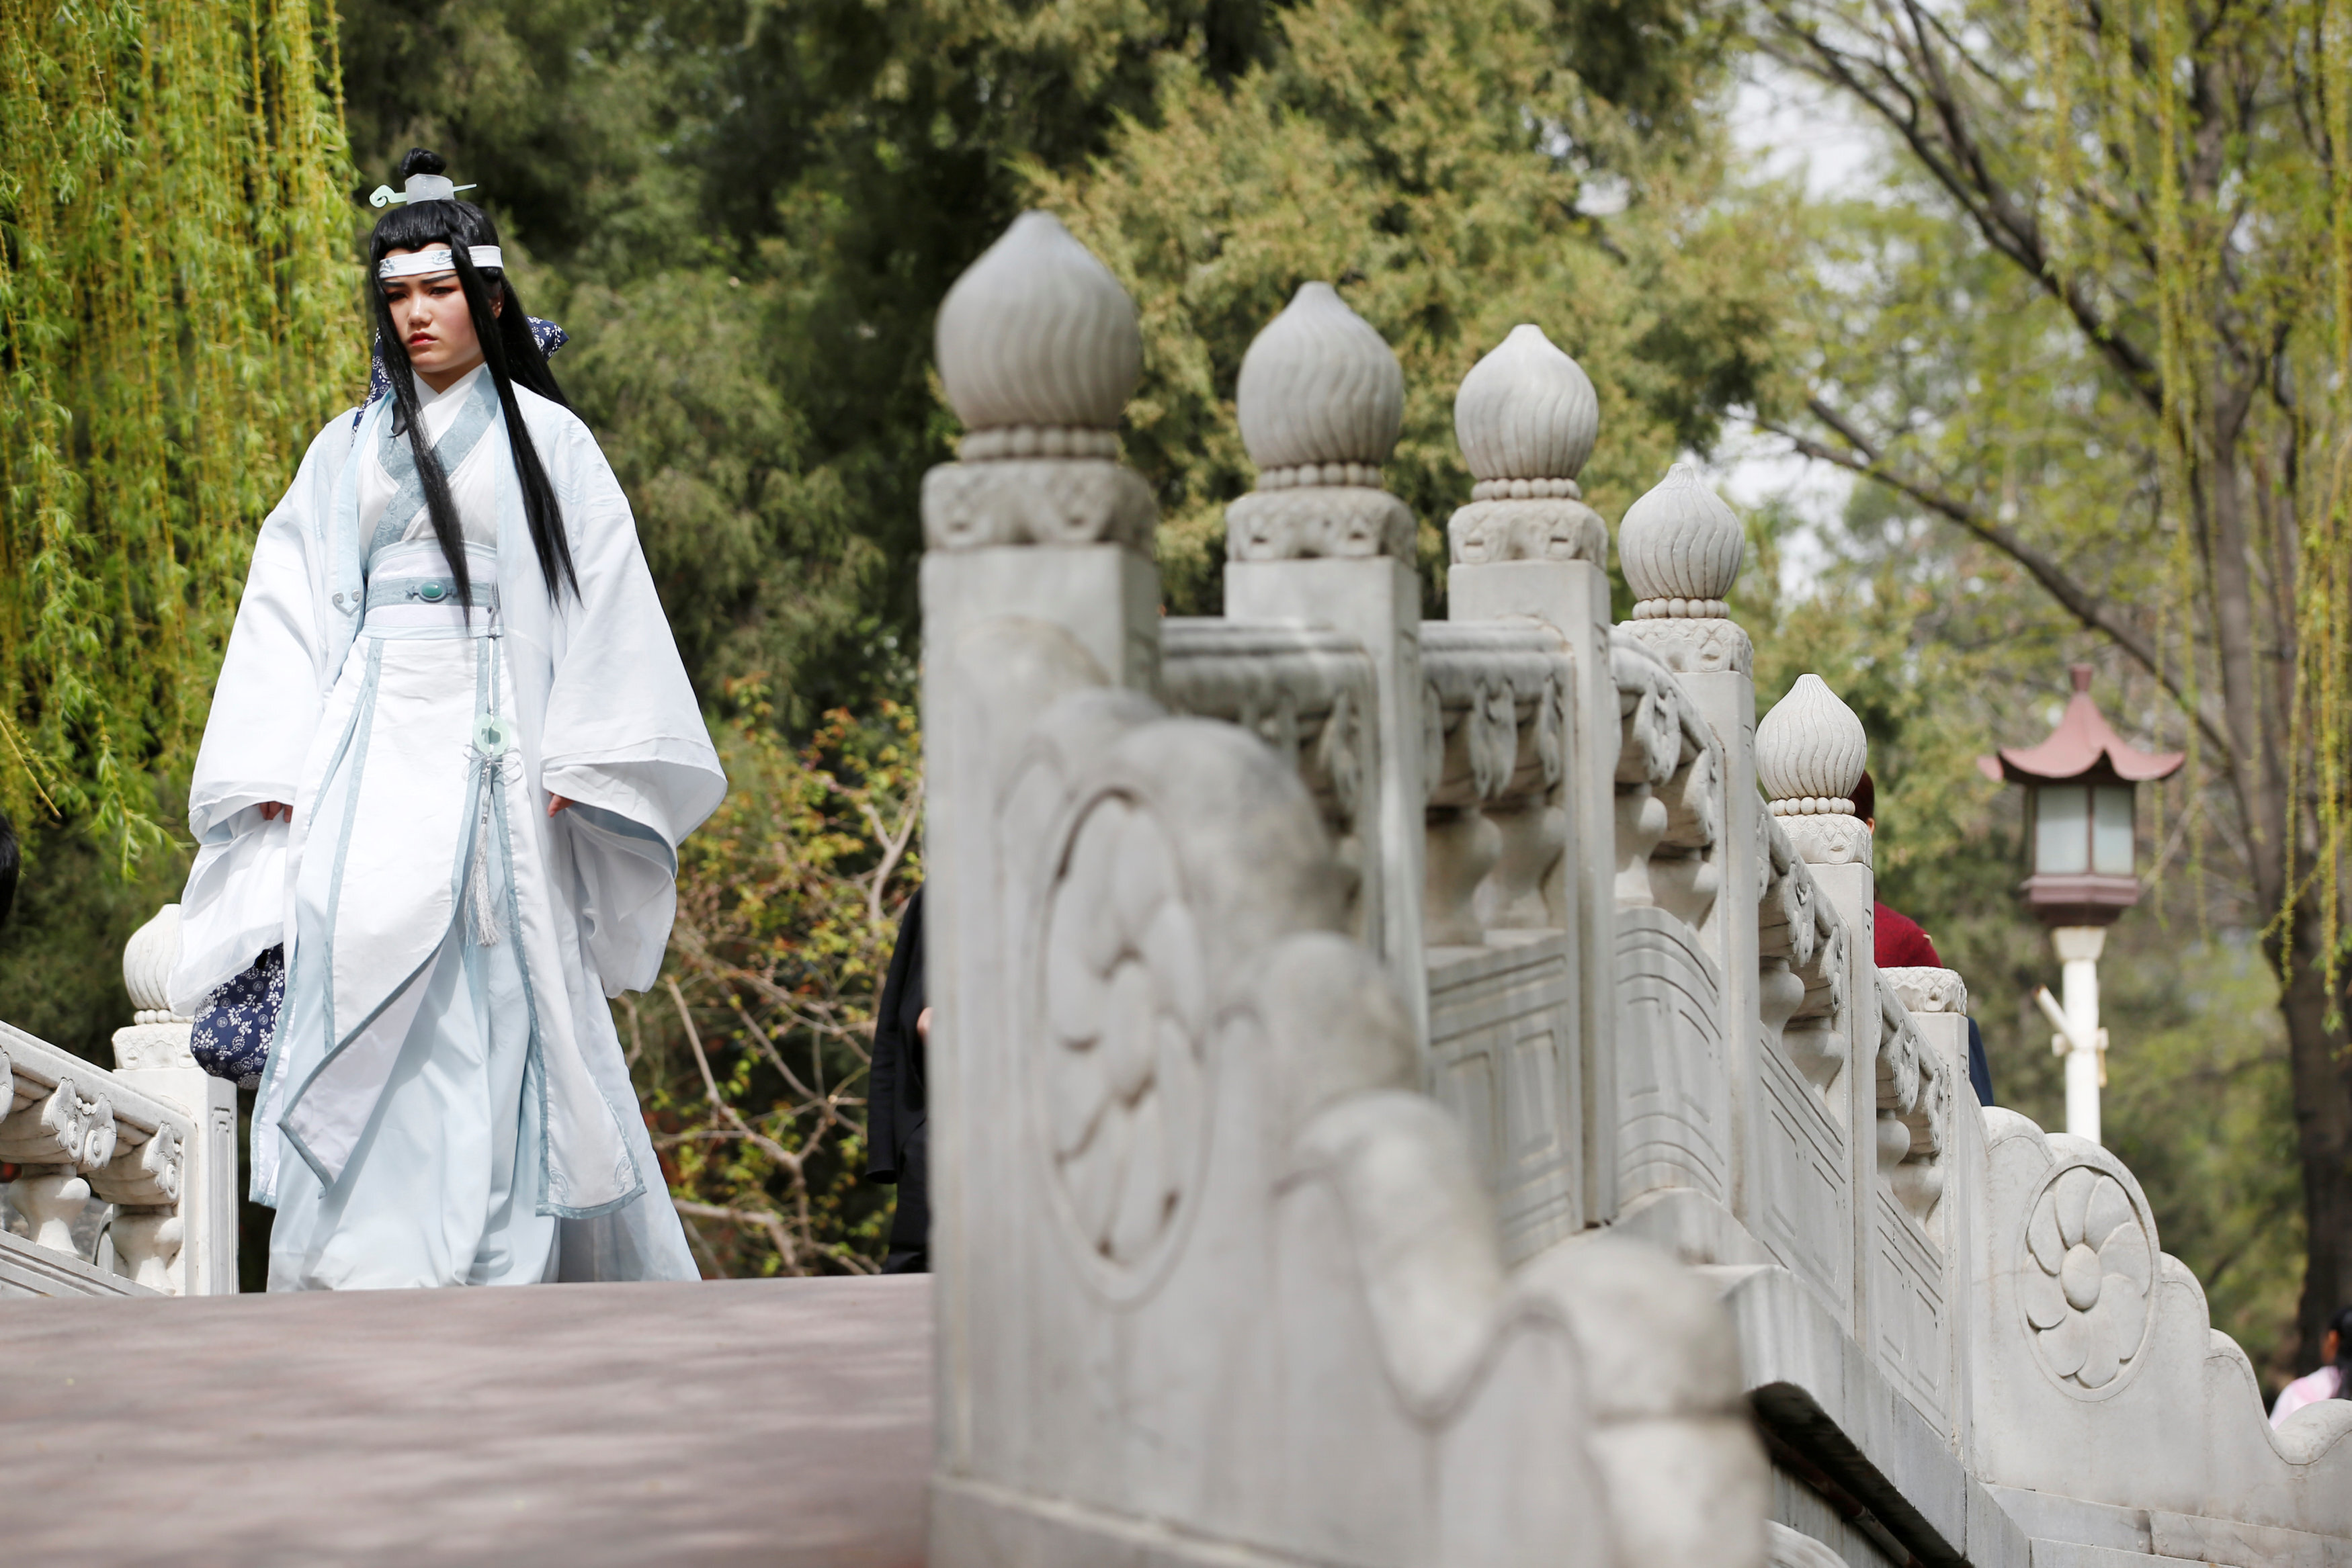 Women dressed in traditional costumes are seen during the Qingming tomb-sweeping festival in Beijing